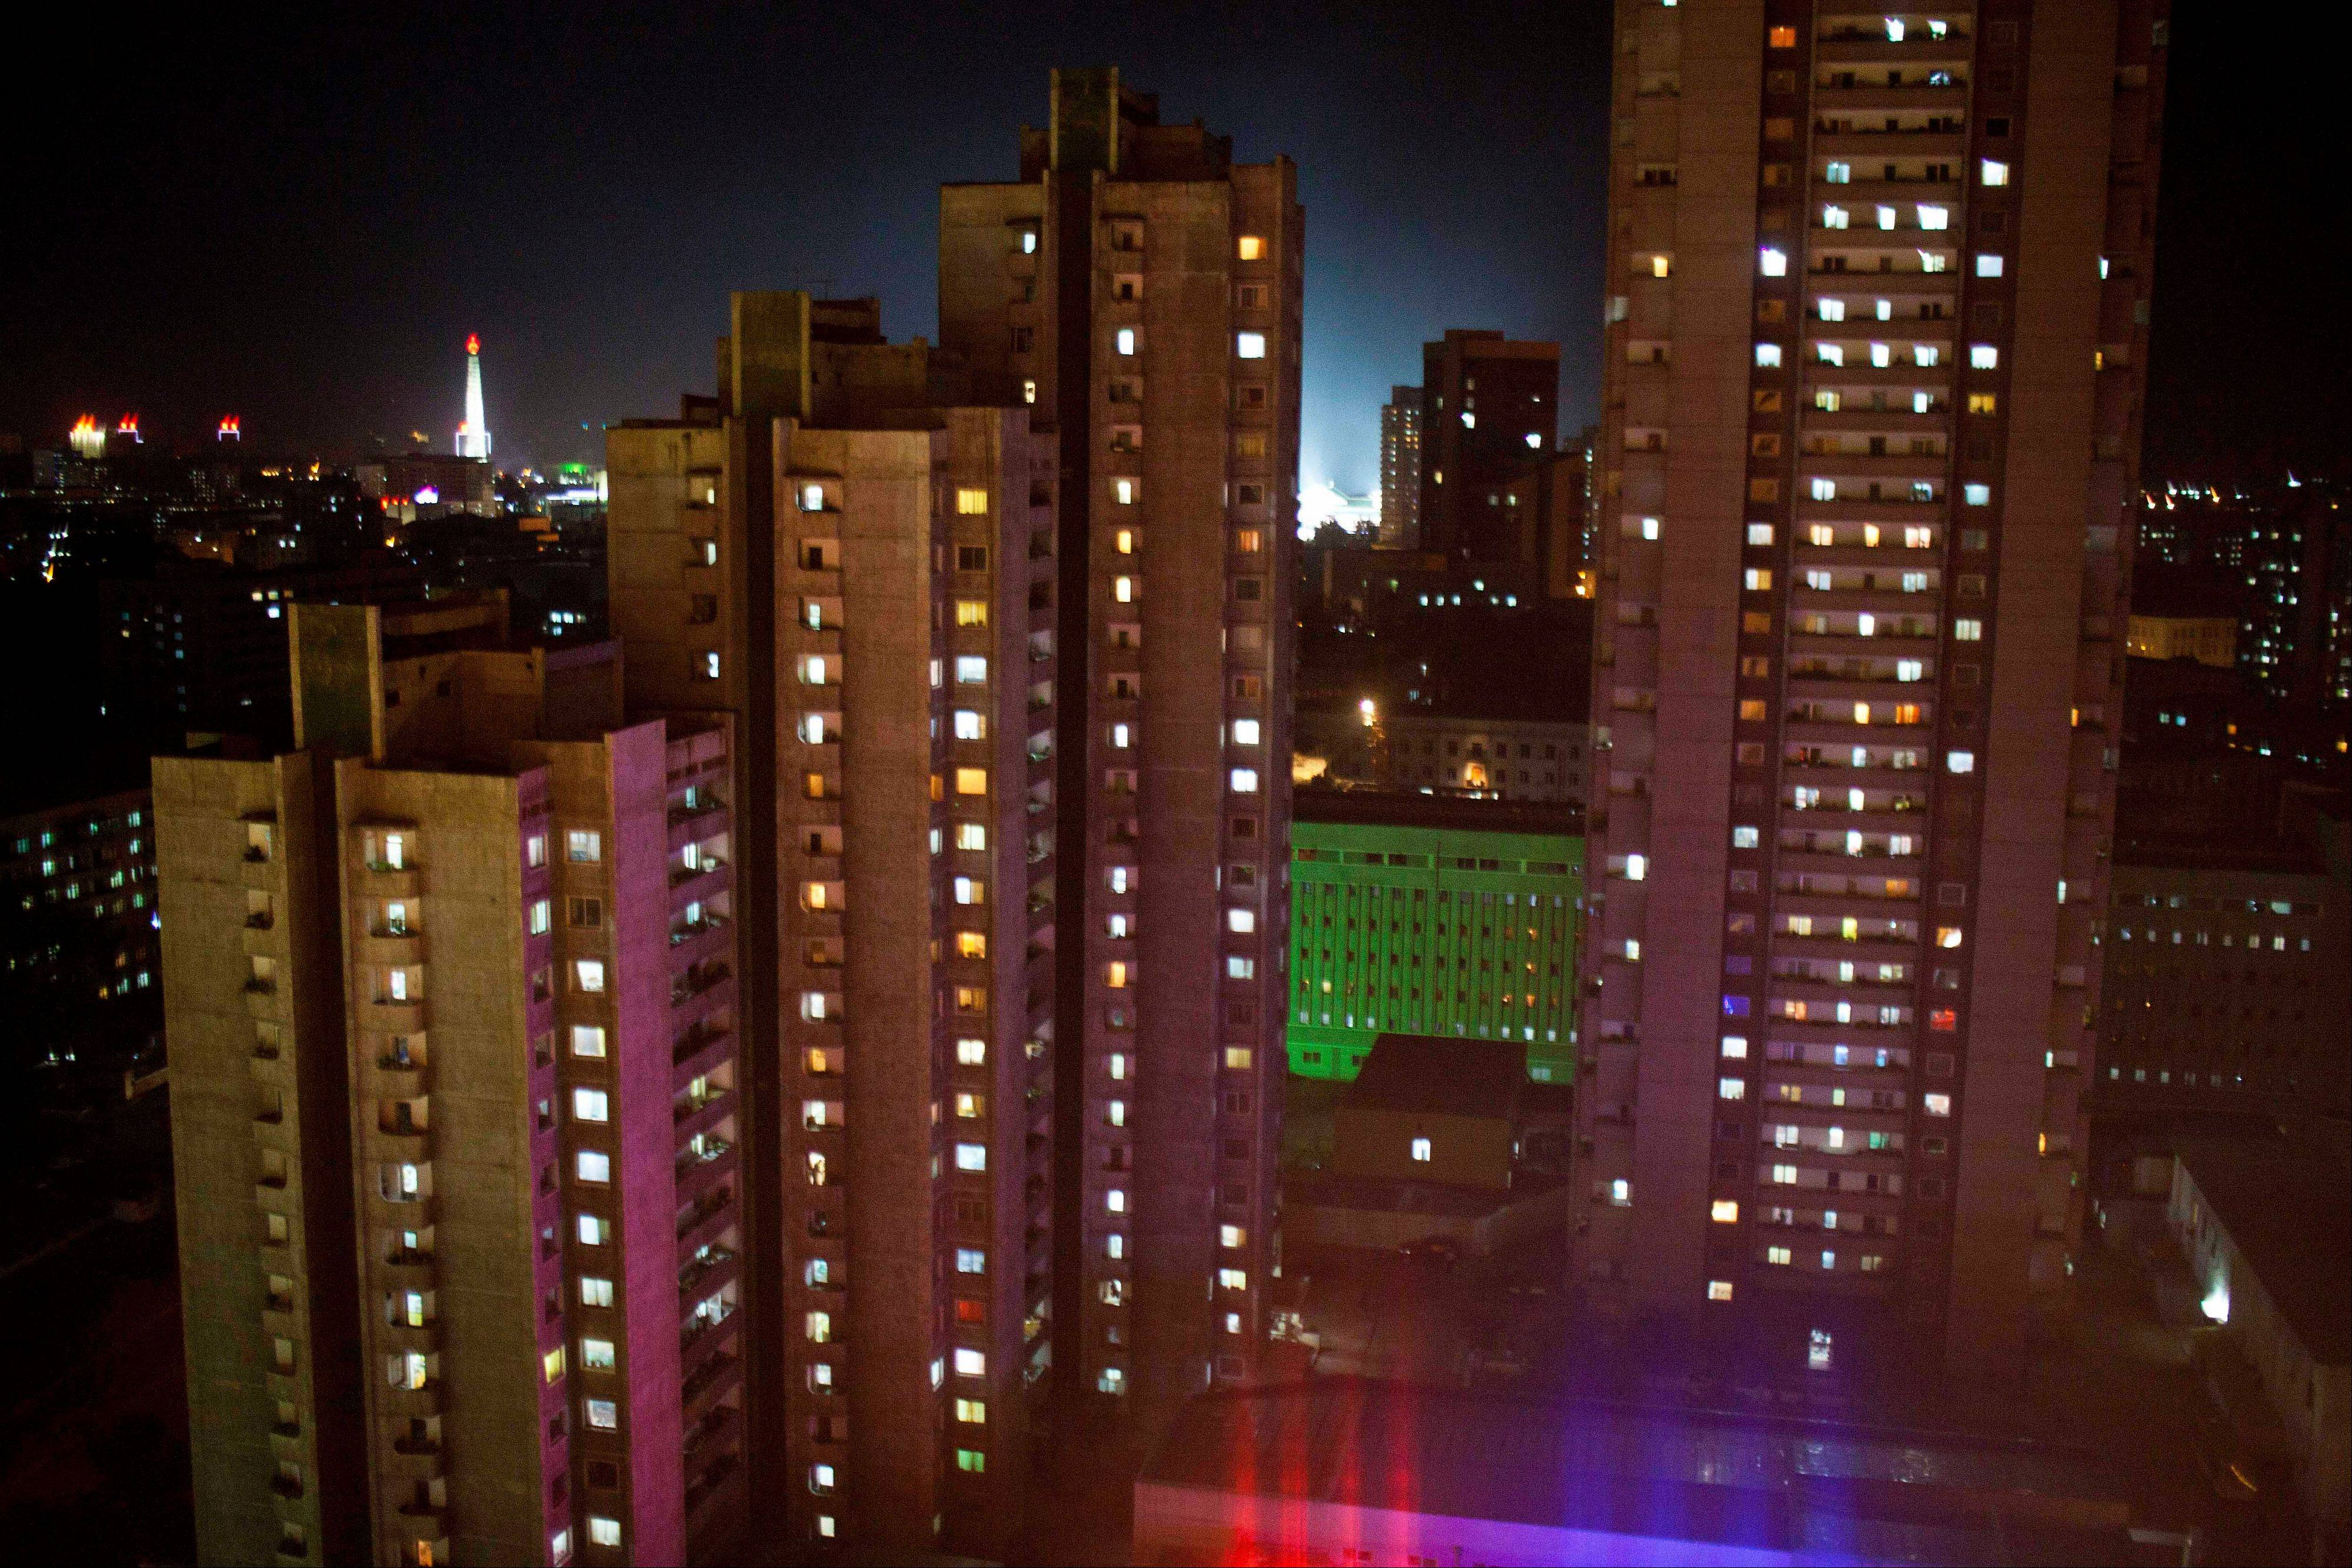 In October 2011, windows of apartment buildings in Pyongyang, North Korea, are lit up at night. Throughout the capital, and in cities and towns across the country, construction workers are trying to finish building renovations and major projects as the country prepares for celebrations on April 15 to mark the 100th anniversary of the birth of North Korea founder Kim Il Sung.